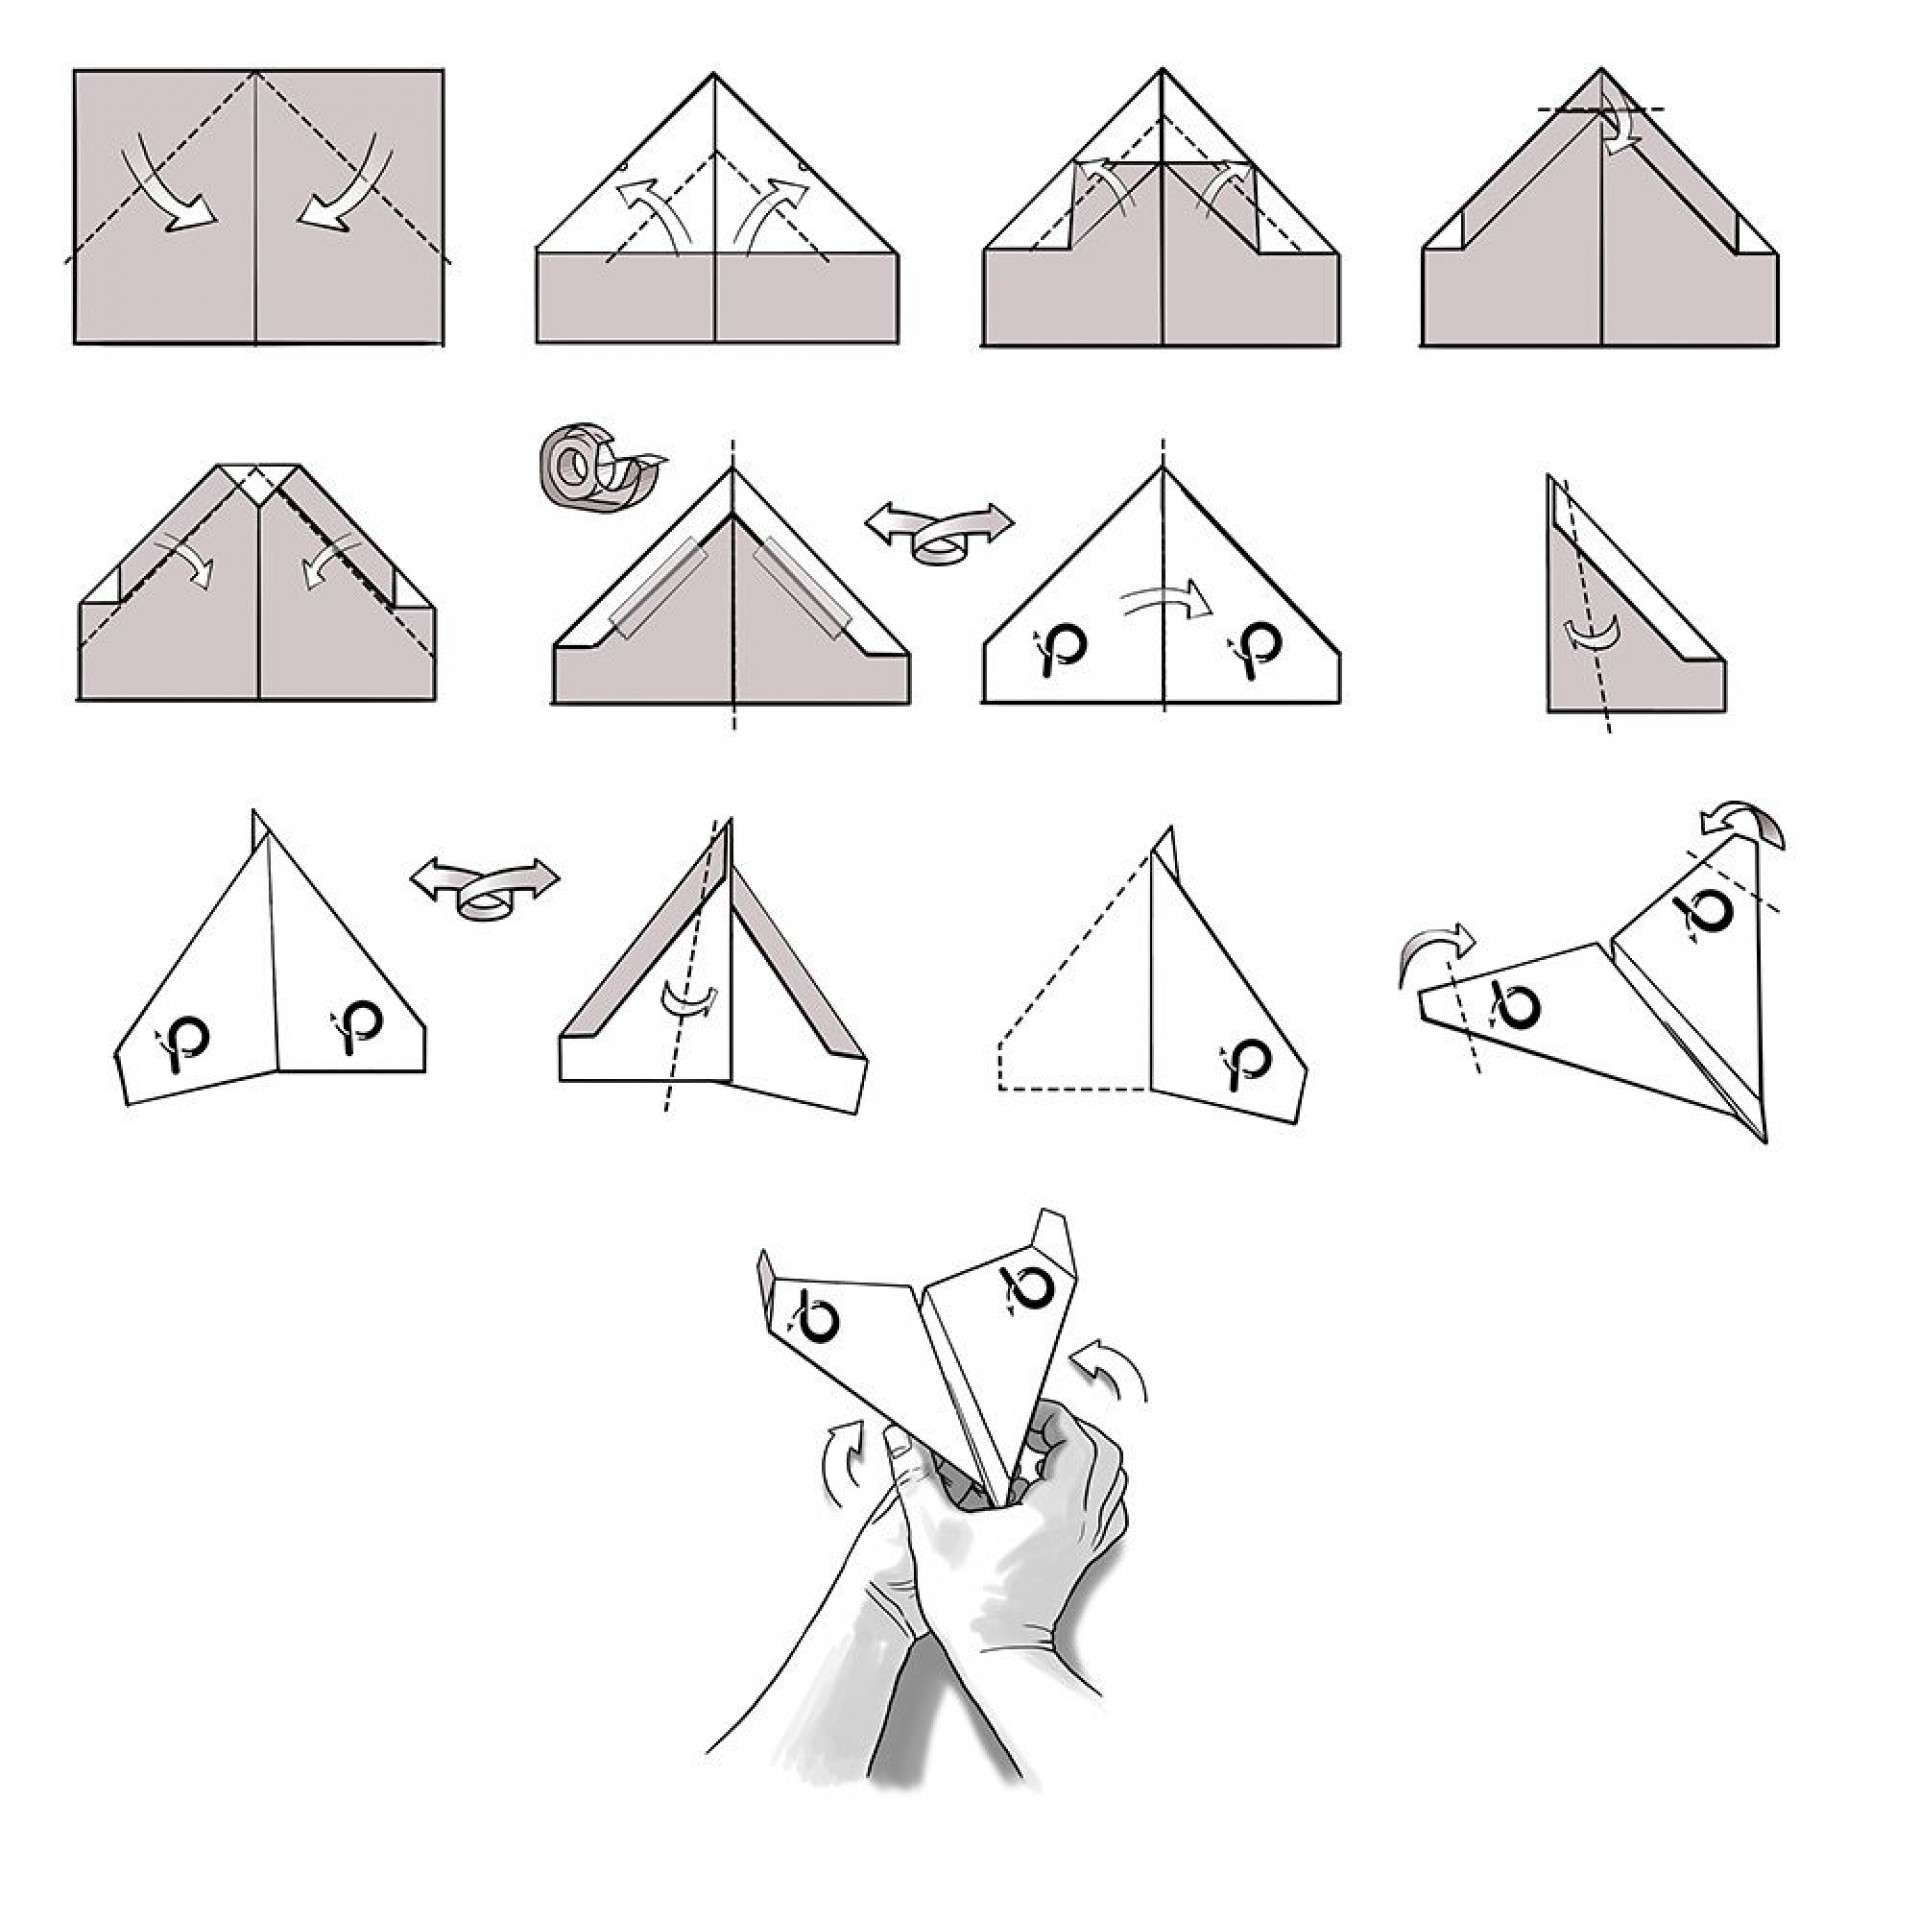 009 Unusual Printable Paper Airplane Folding Instruction High Resolution  Instructions1920